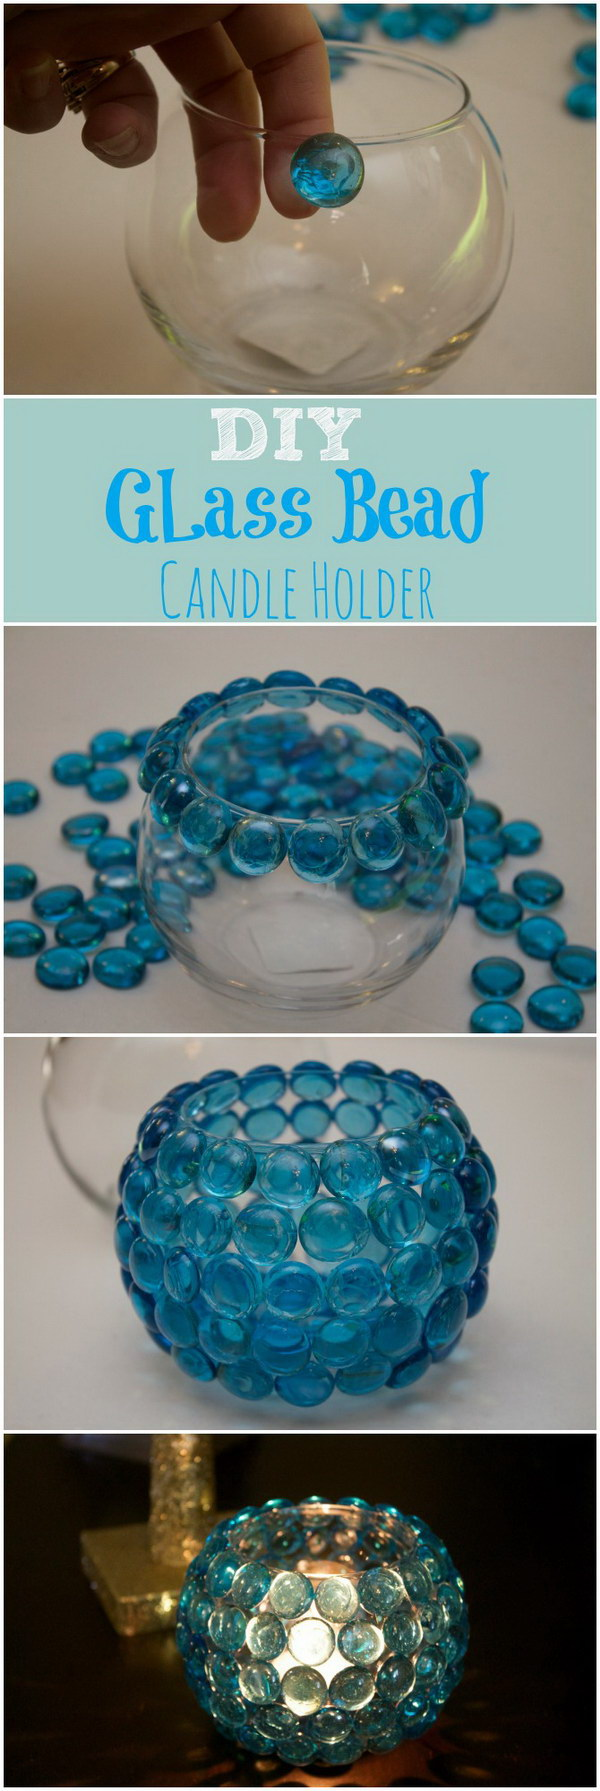 Glass Bead Candle Holders.